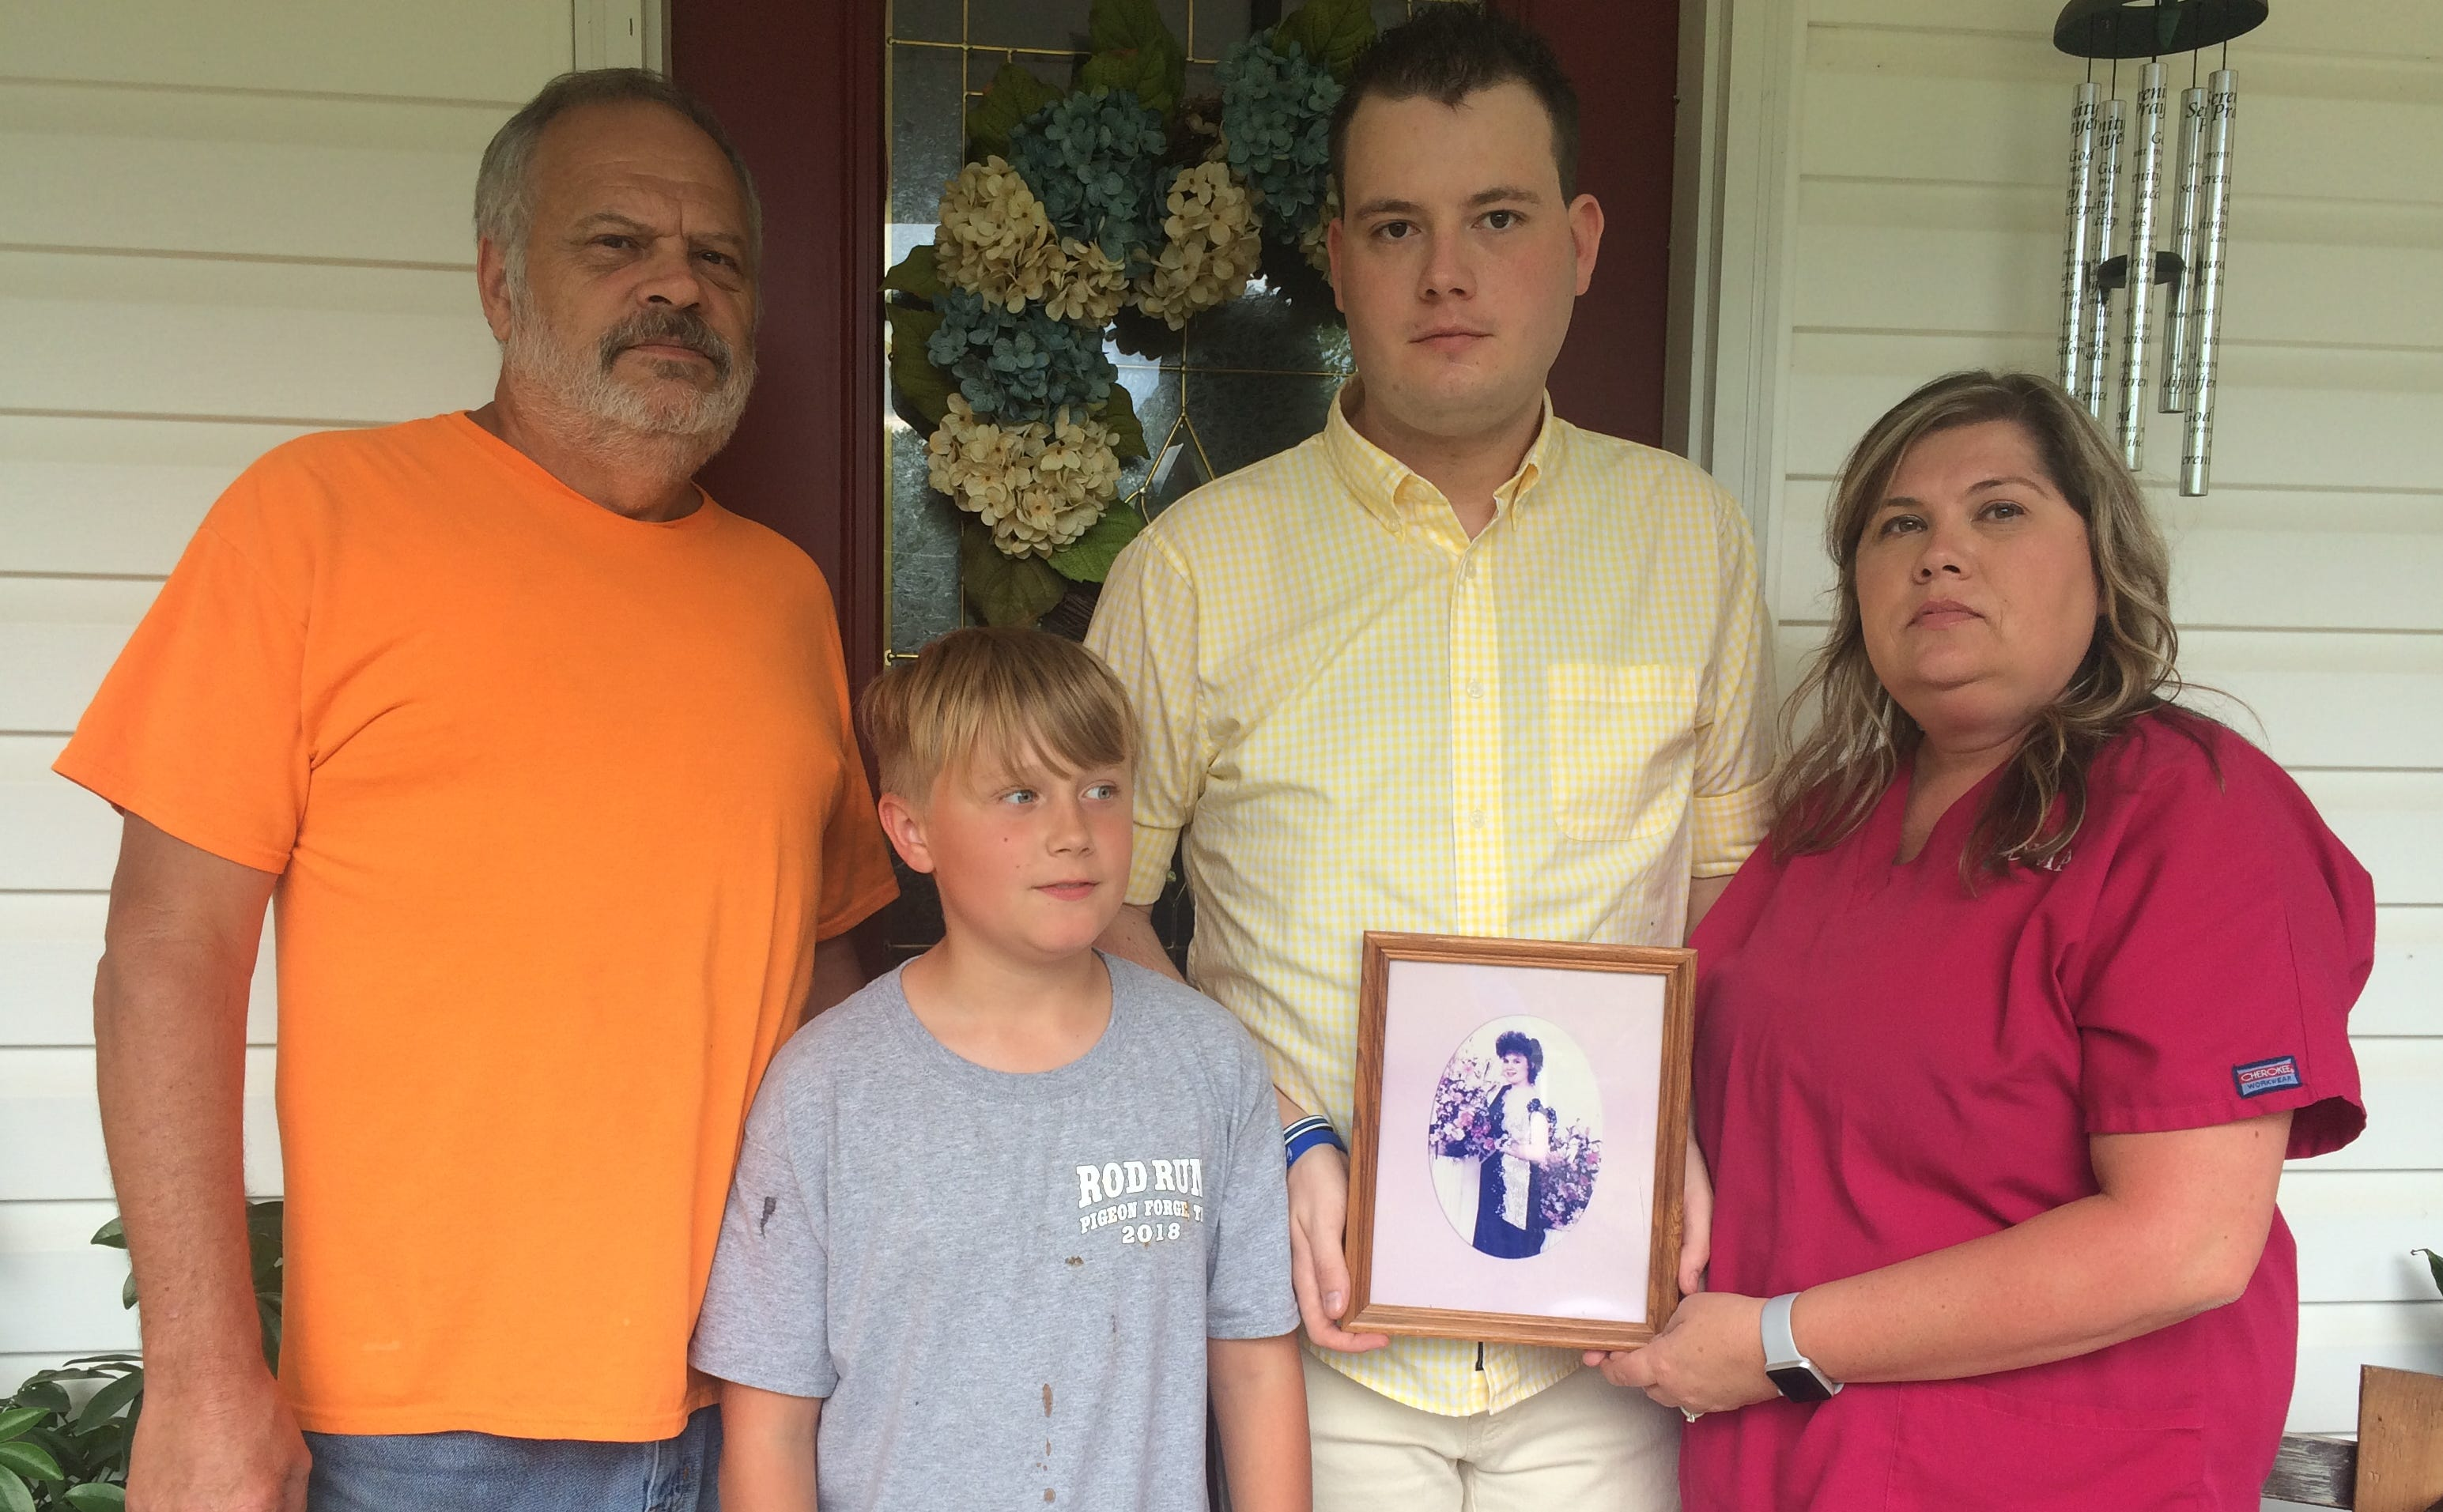 Pictured, from left Charles Newberry, Caden Newberry, D.J. Tucker, and Brandy Richardson. Tucker is the son of Karie Ann Newberry, who was shot and killed in 1993. Charles is Karie Ann's father and Brandy is her sister. Tucker holds a photo of his mother.